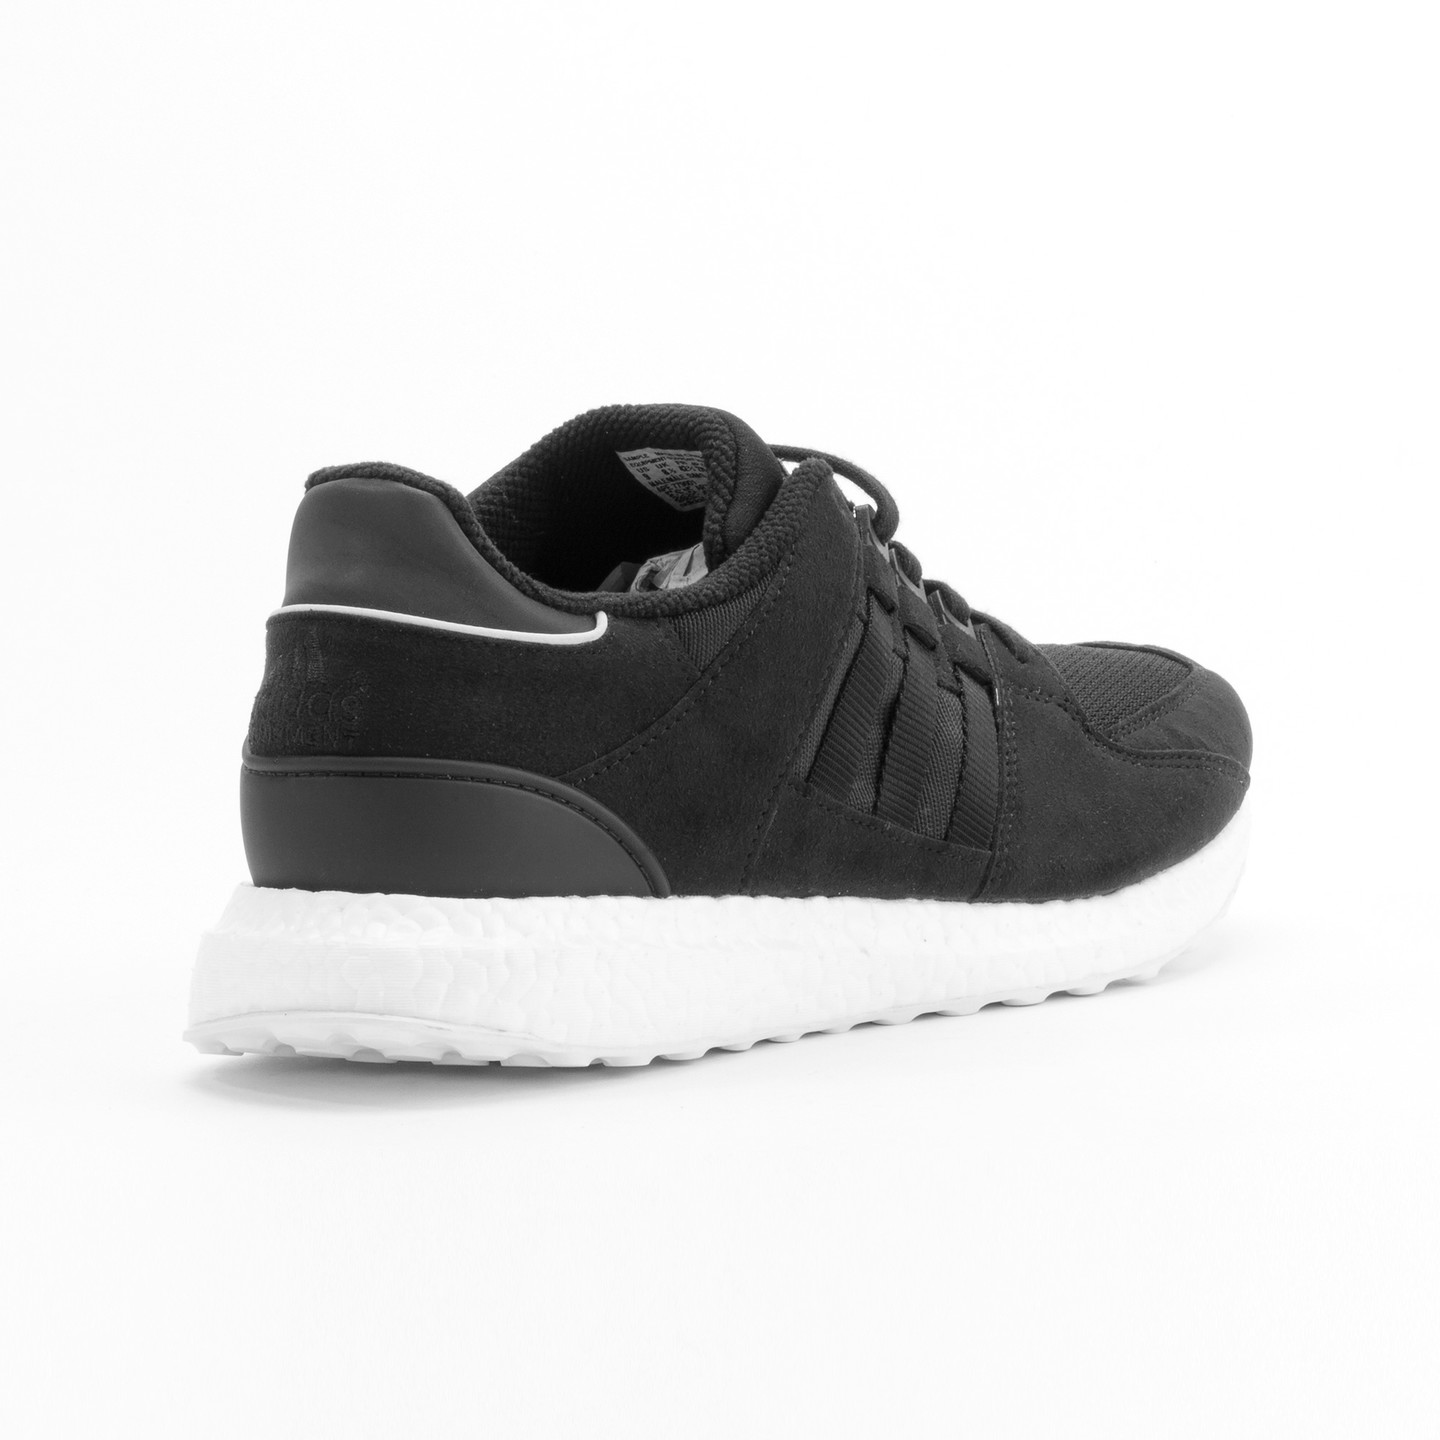 Adidas Equipment Support 93/16 Core Black / Running White BY9148-47.33